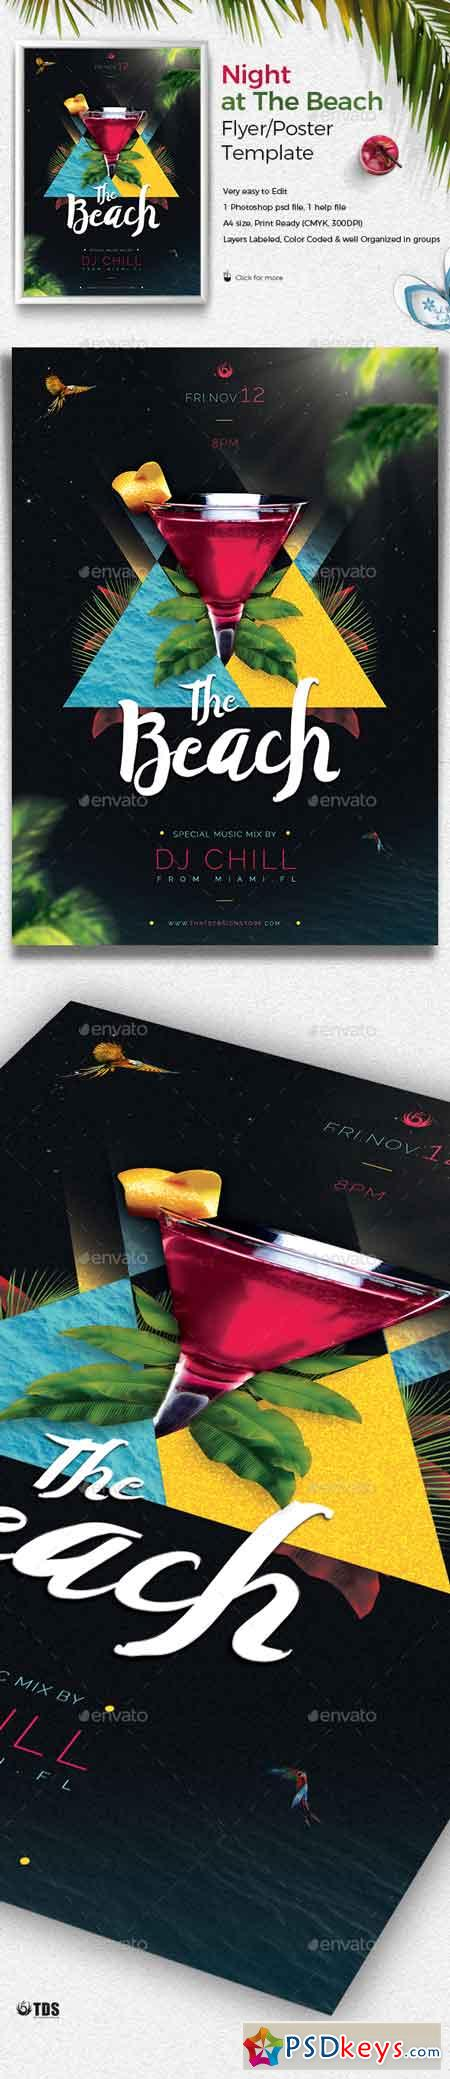 Night at The Beach Flyer Template 19516780